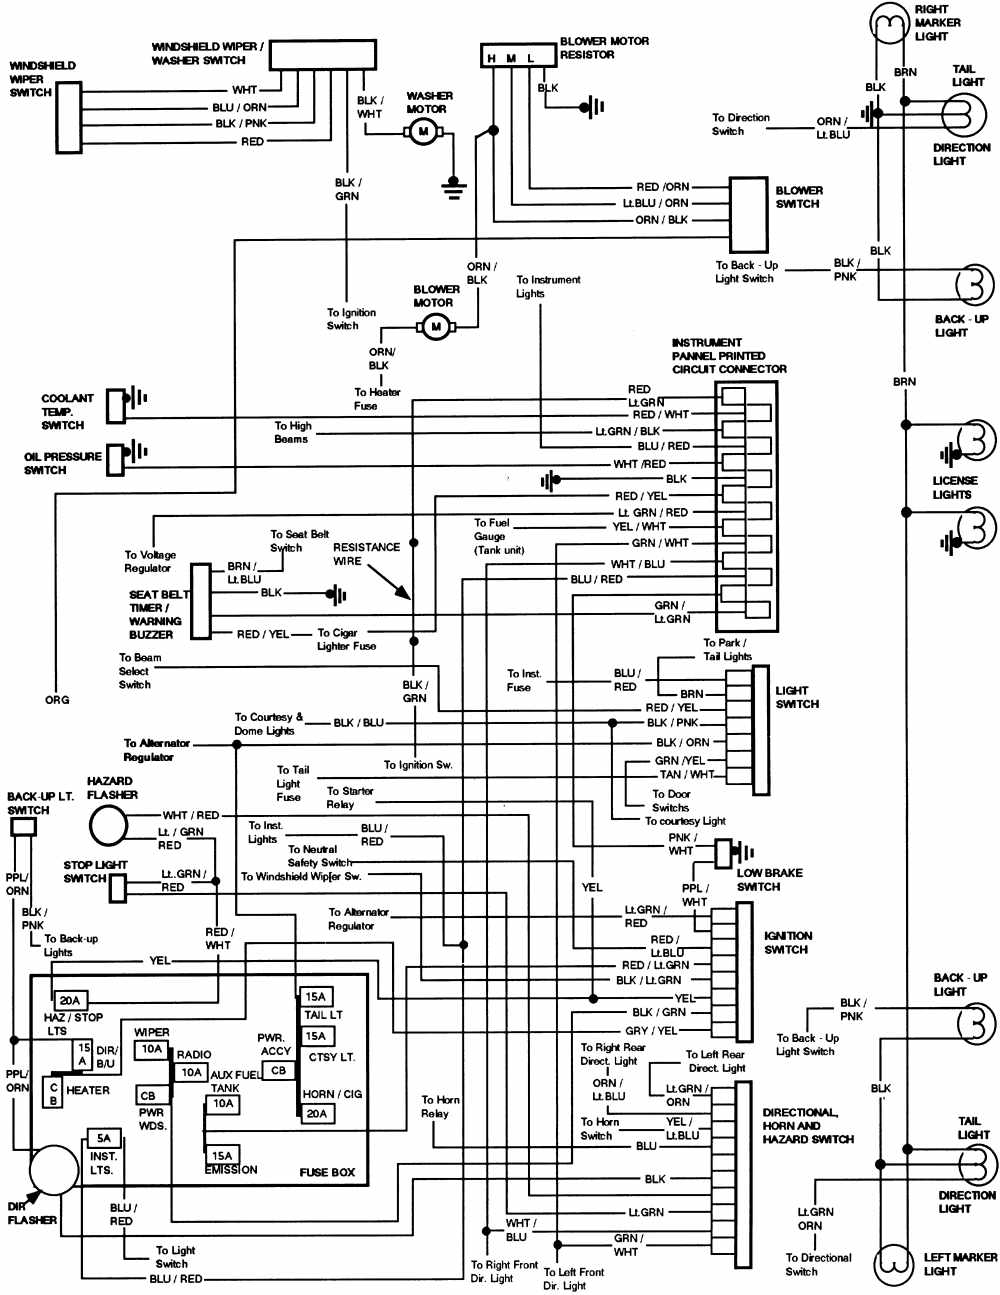 engine interface module wiring diagram